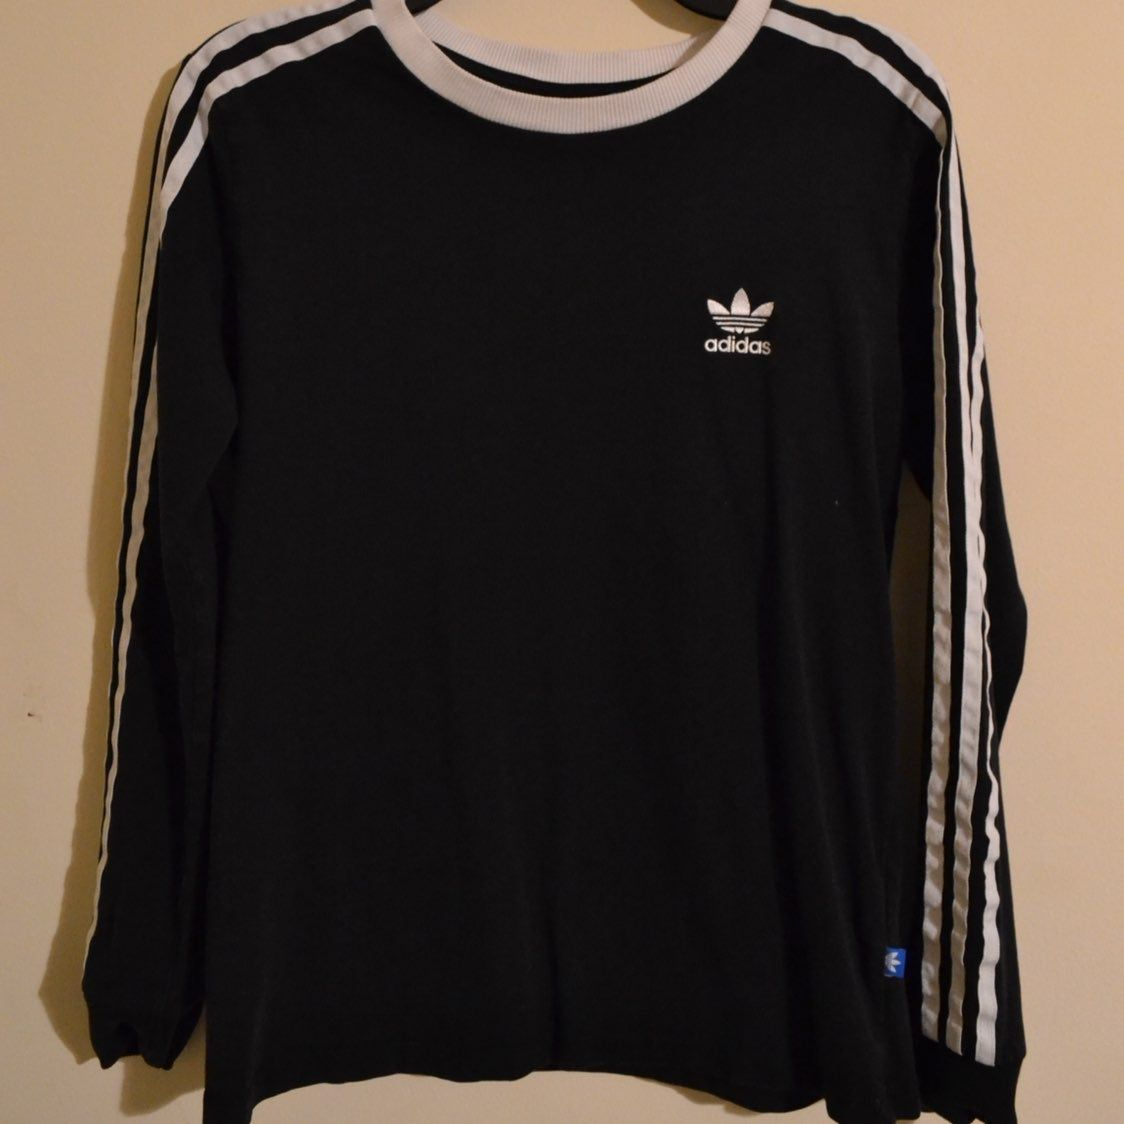 Adidas Retro 3 Stripes Black Longsleeve T Shirt Top Unisex